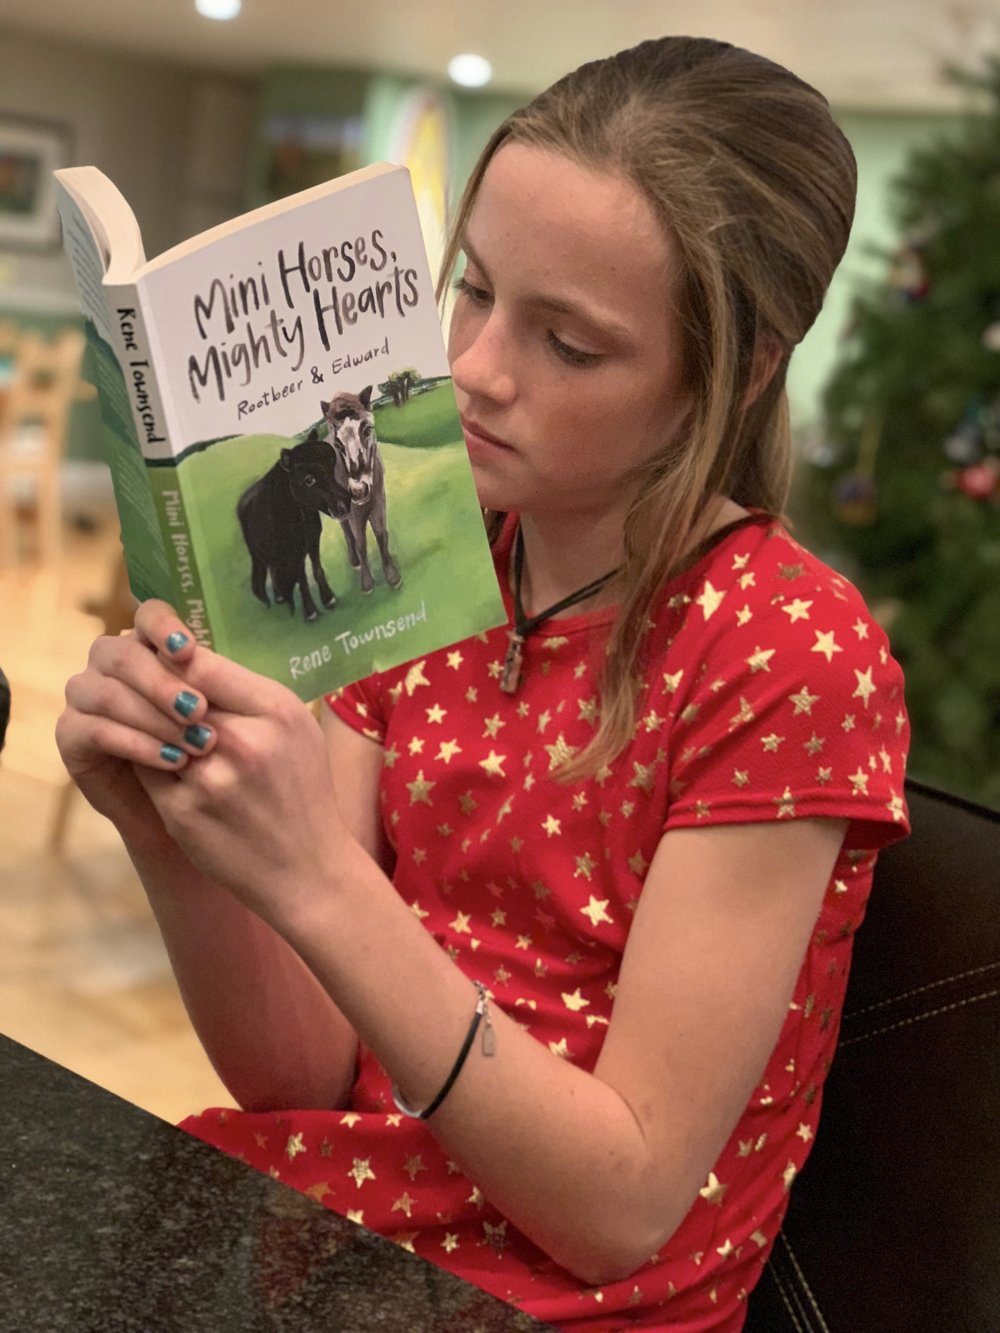 MiniHorses_MightyHearts_Read_by_girl_in_red.jpg